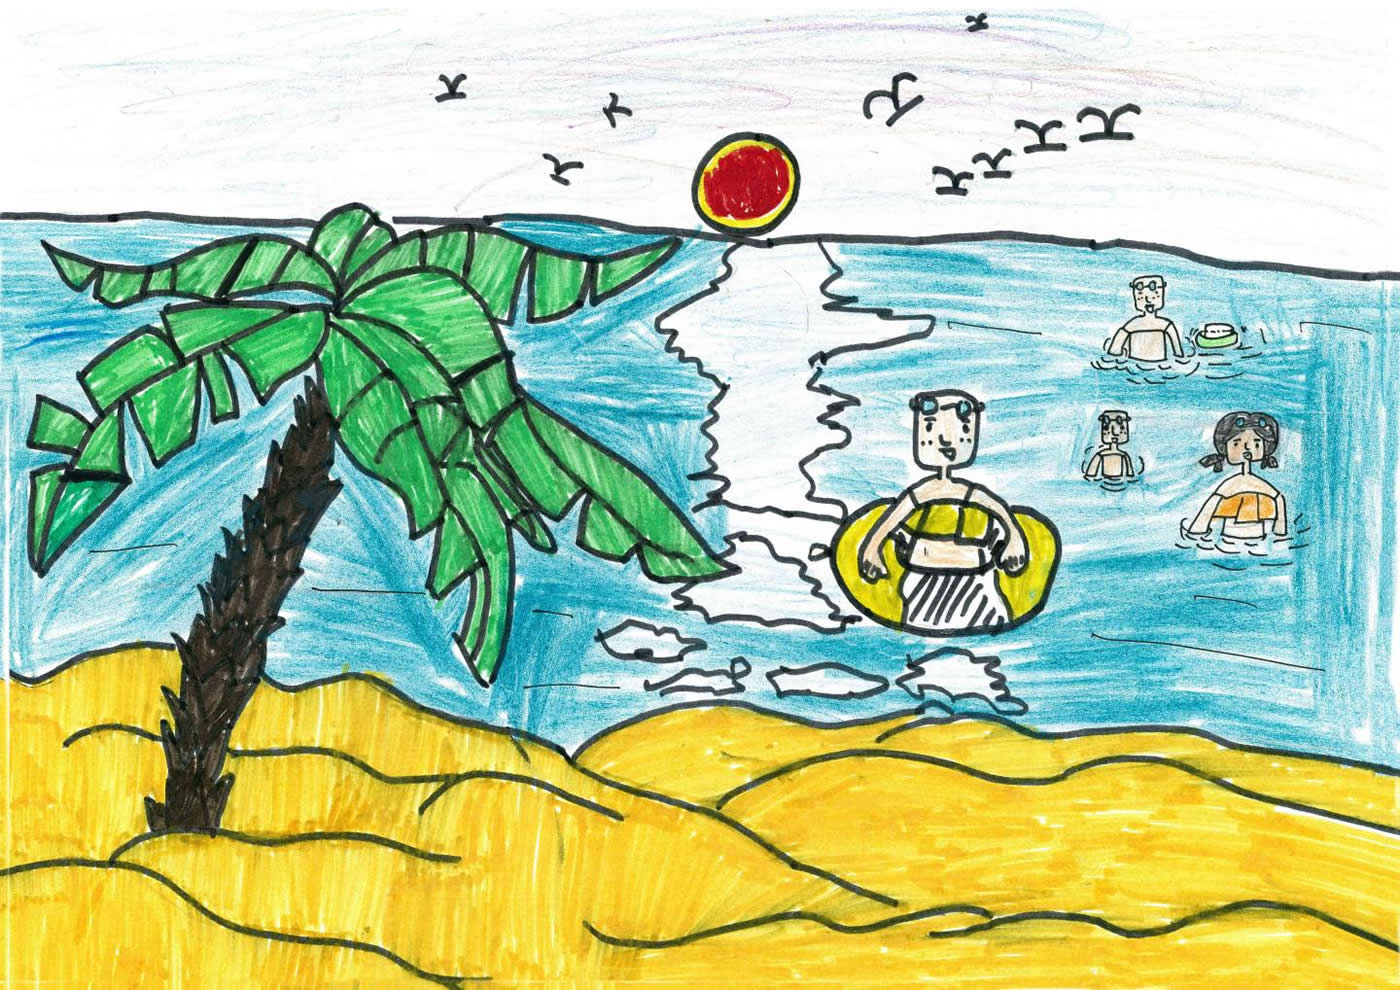 This is a child's drawing of a day at a beach